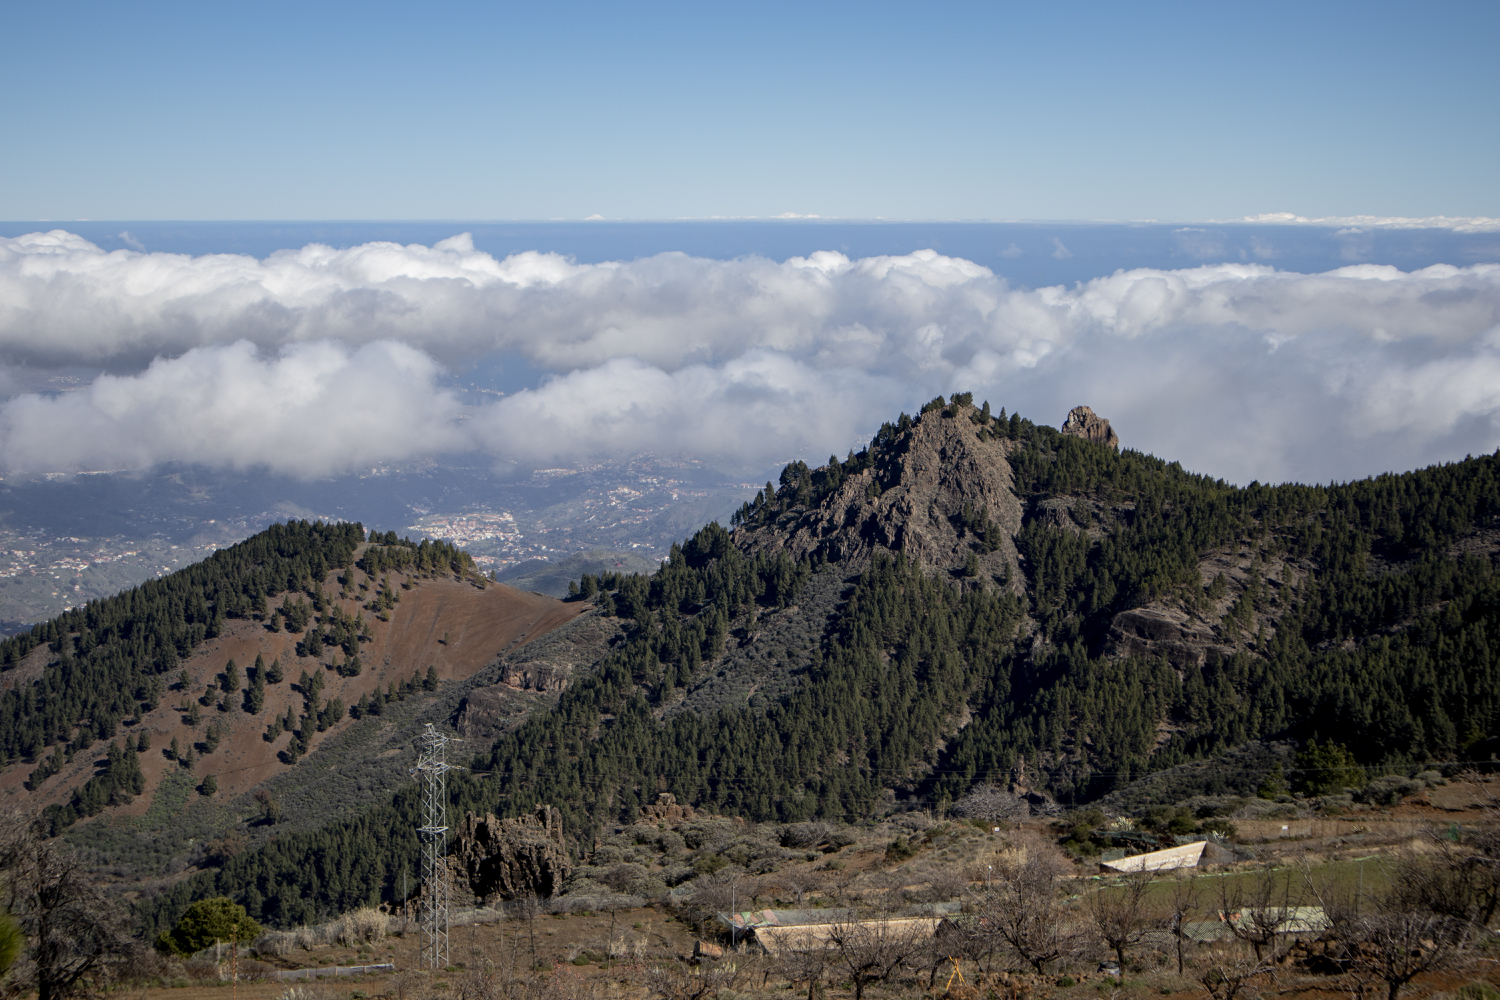 View of the vast landscape of Gran Canaria from the Becerra hiking trail